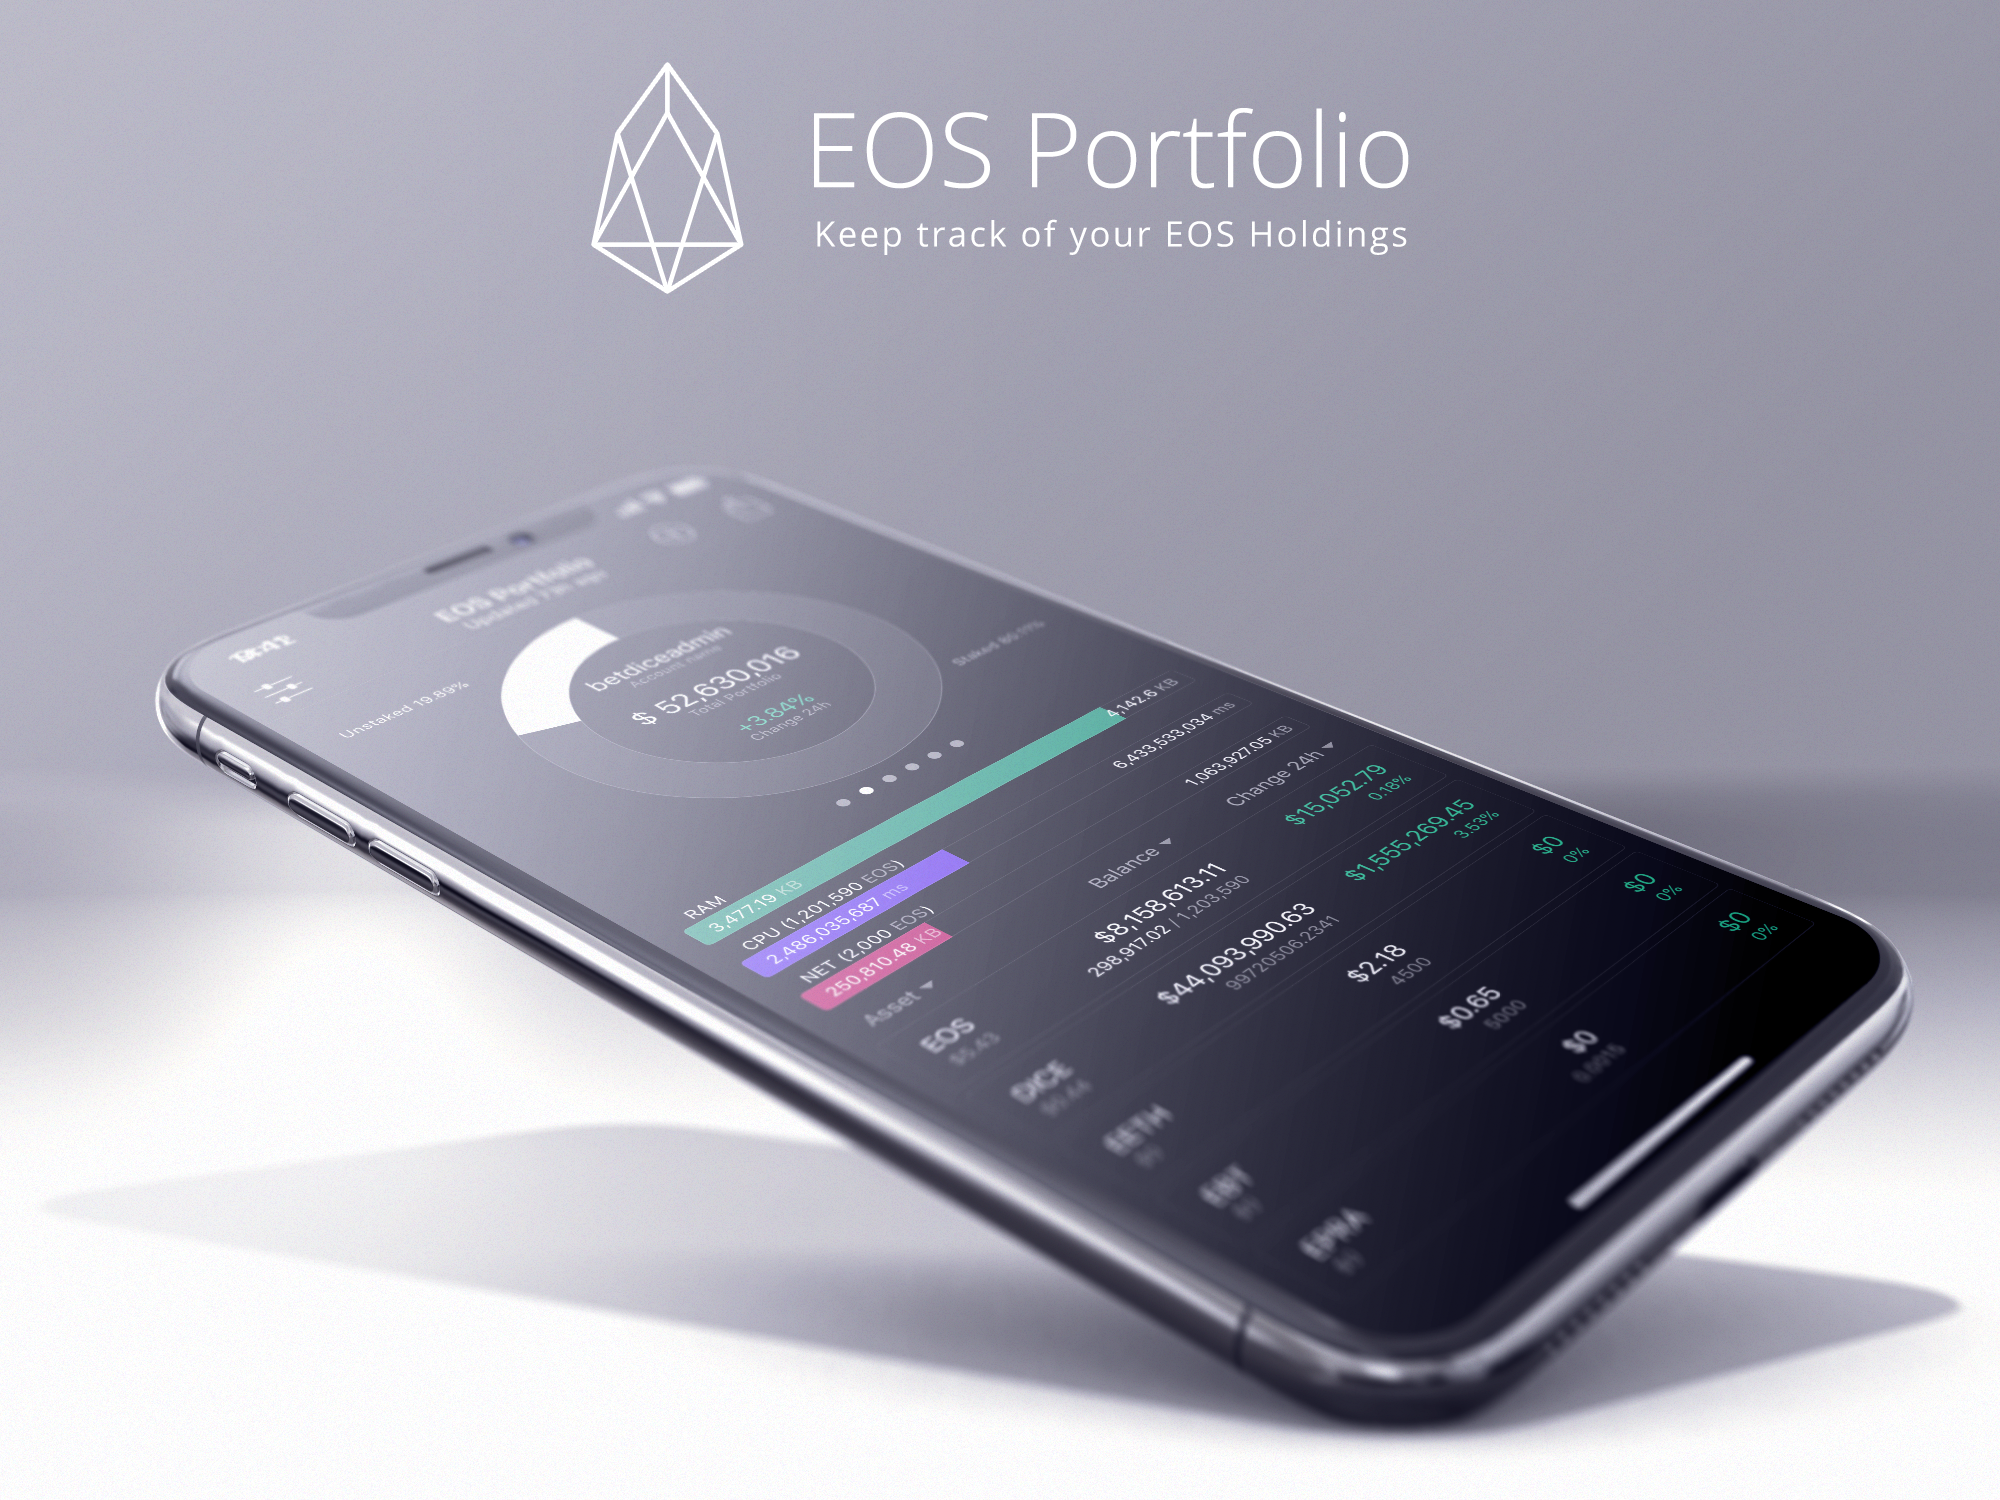 /eos-portfolio-tracker-app-manage-your-tokens-anywhere-anytime-ed914691ca3 feature image